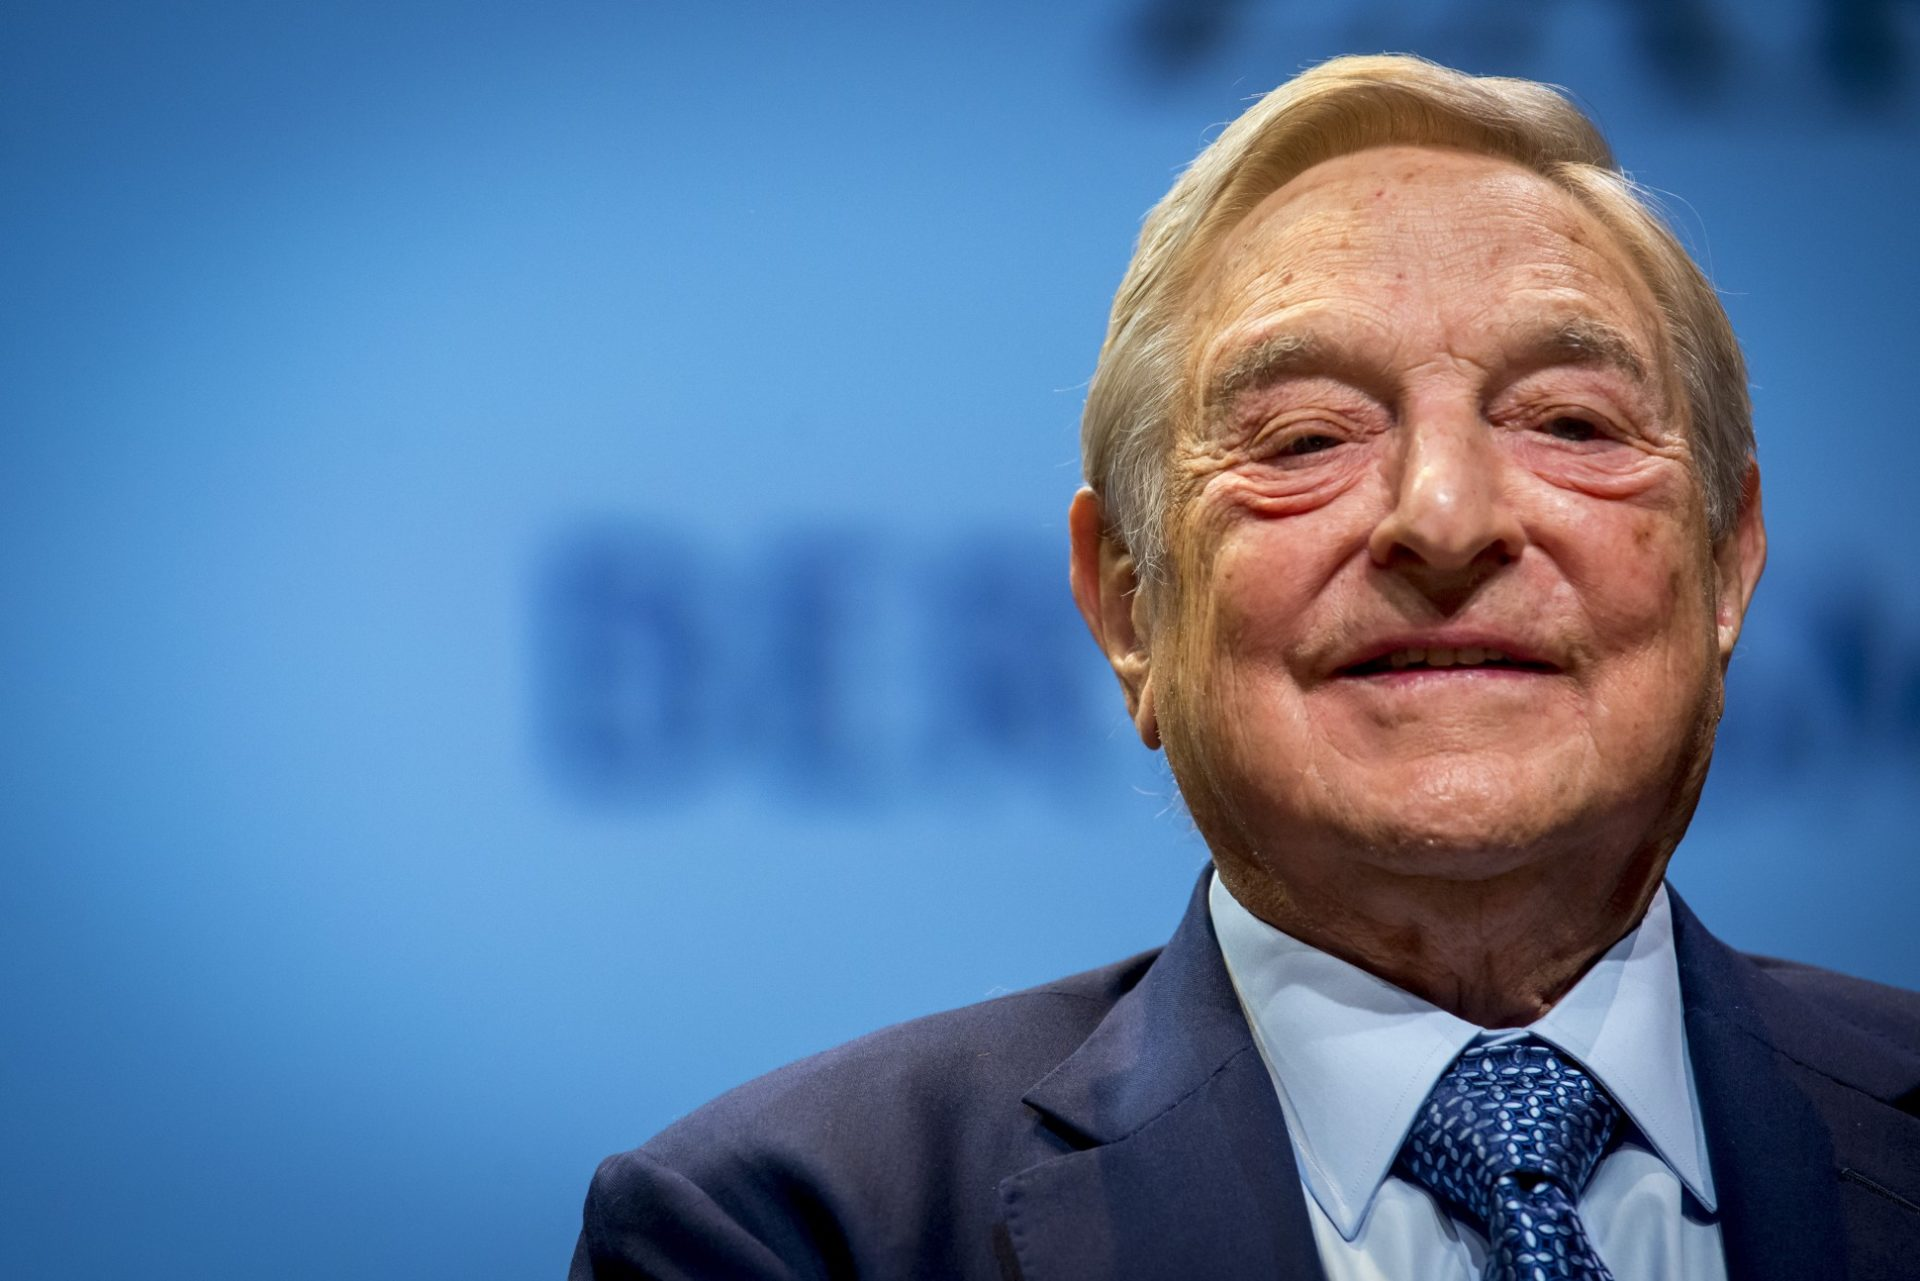 Soros Chalks Up Another DA Win After Dropping Nearly 1 Million In Texas Race